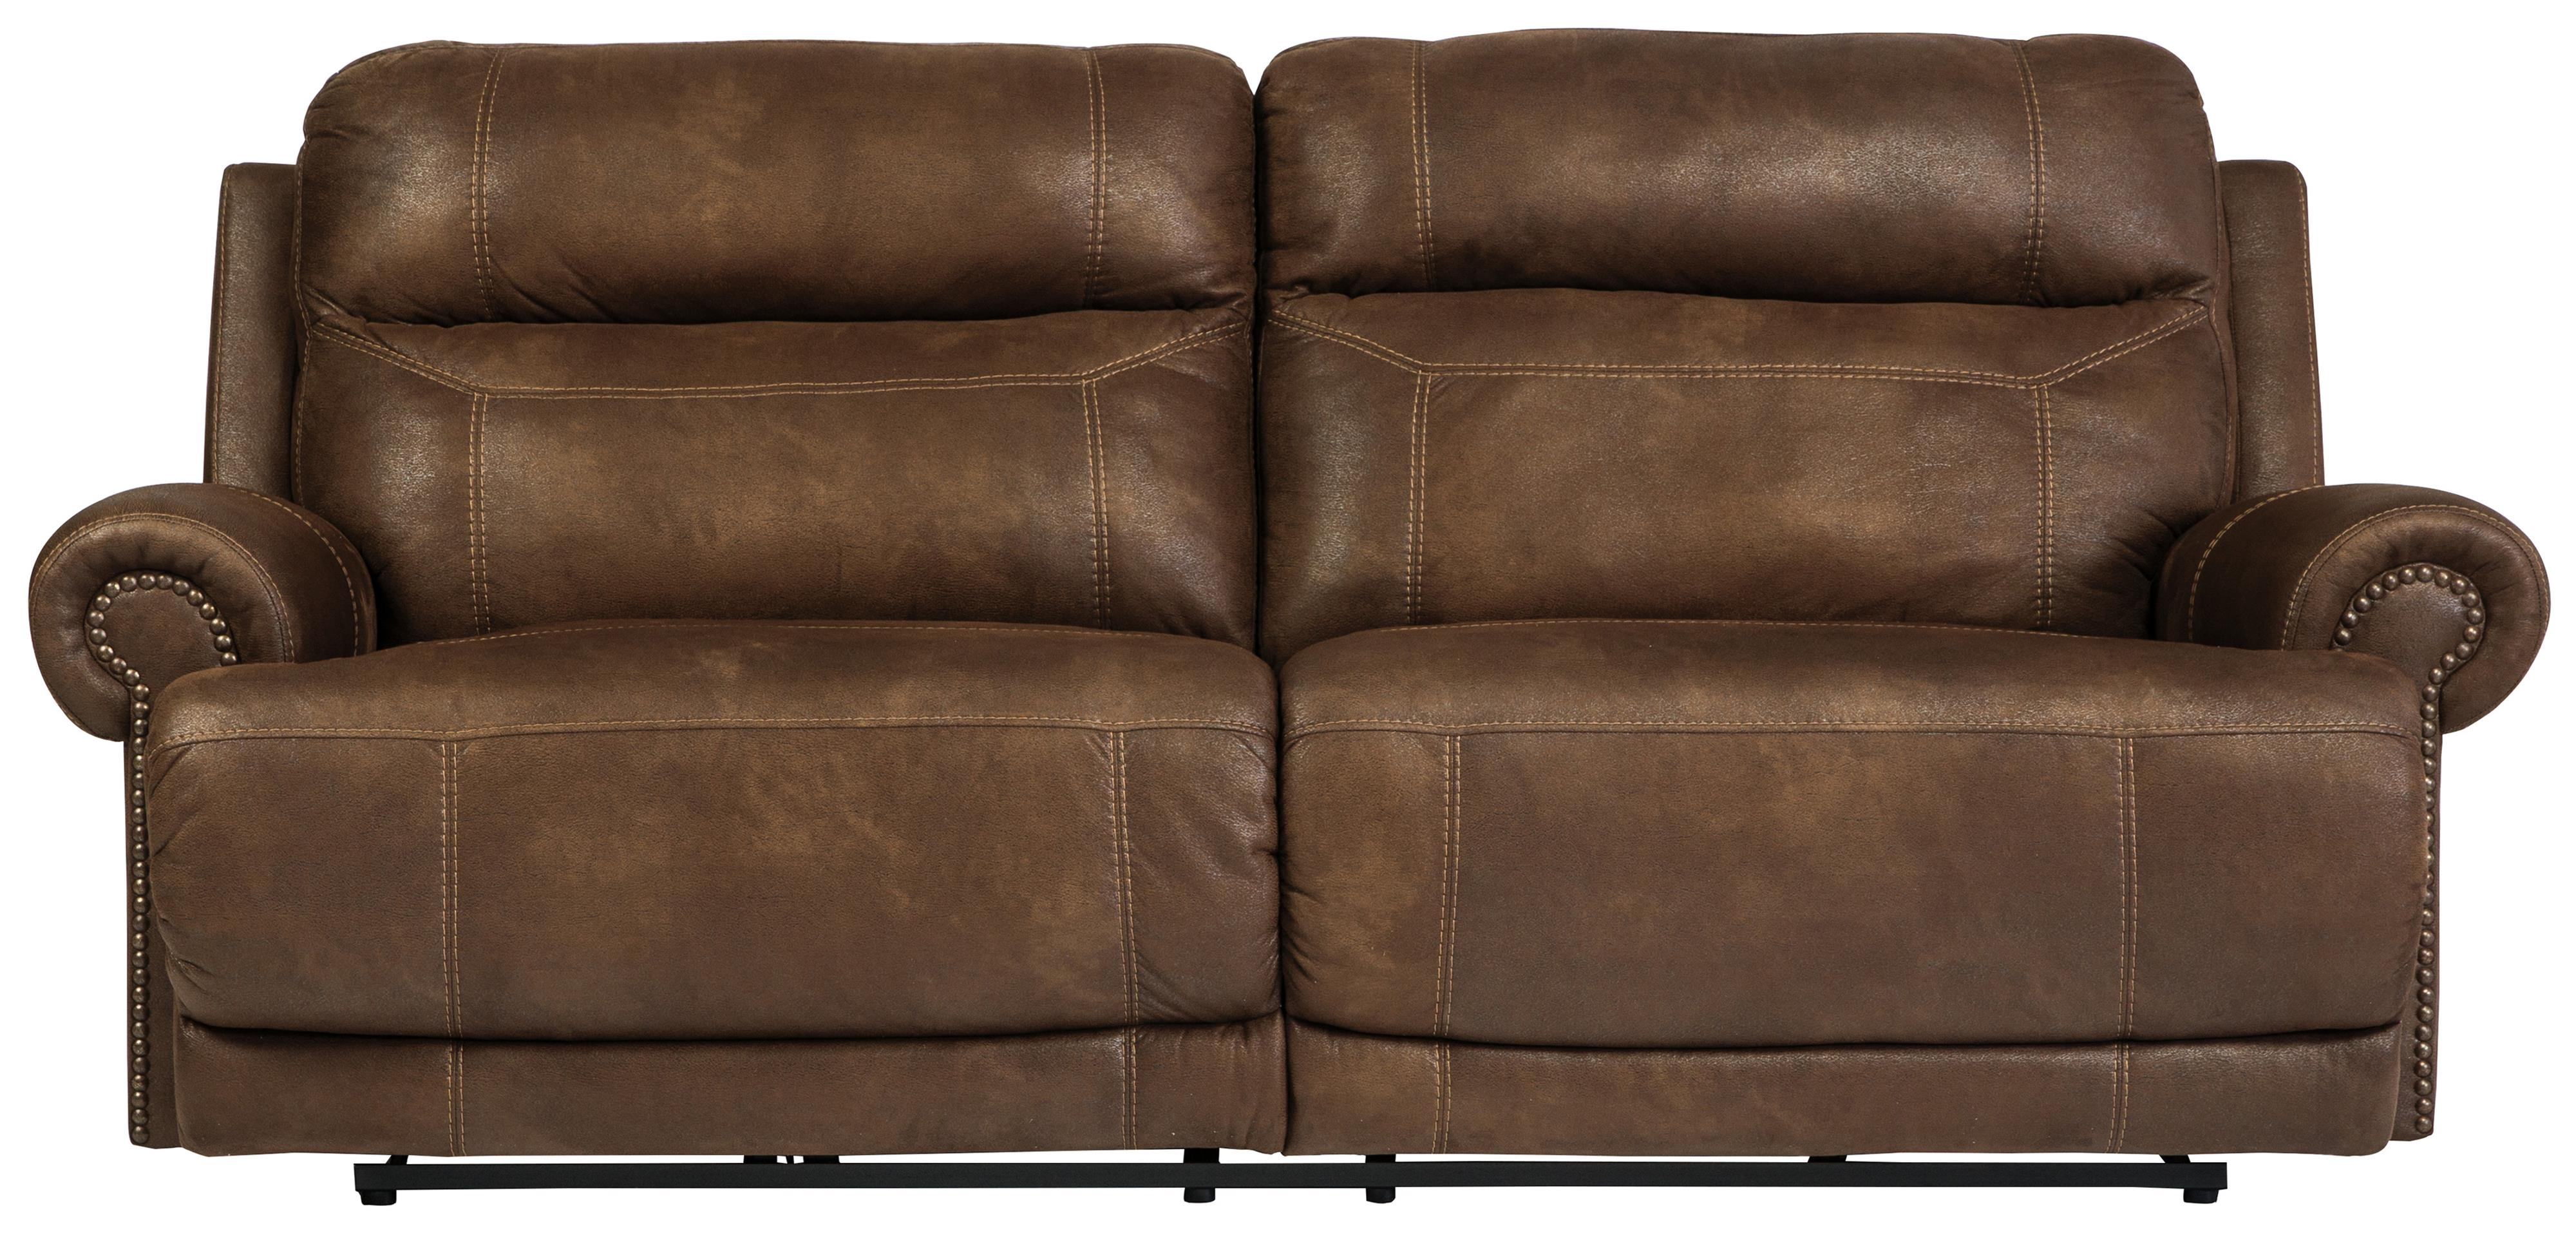 Austere - Brown 2 Seat Reclining Sofa by Signature Design at Fisher Home Furnishings